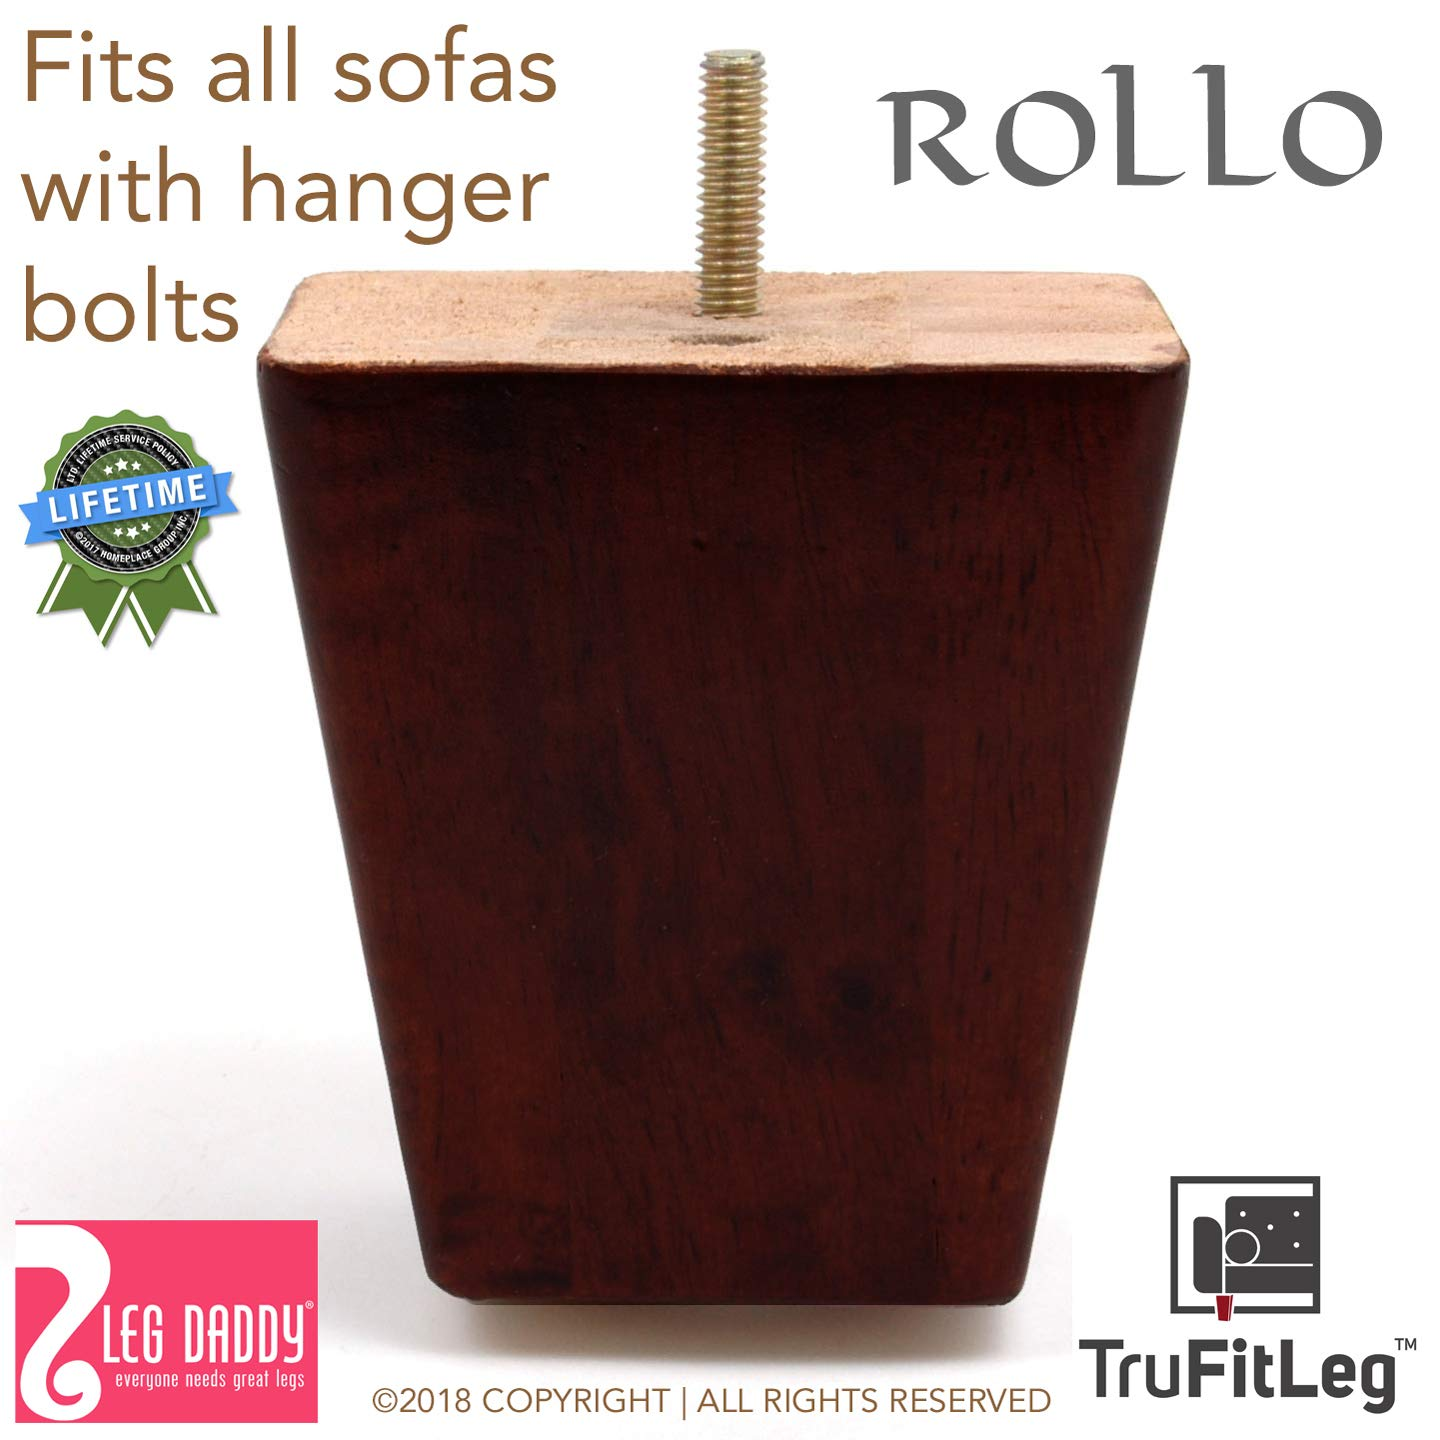 Leg Daddy TruFitLeg Rollo - 4'' Dark Finish Square Tapered Sofa Legs, Fits on All Furniture with Hanger Bolt Attachments (Set of 4) by Leg Daddy